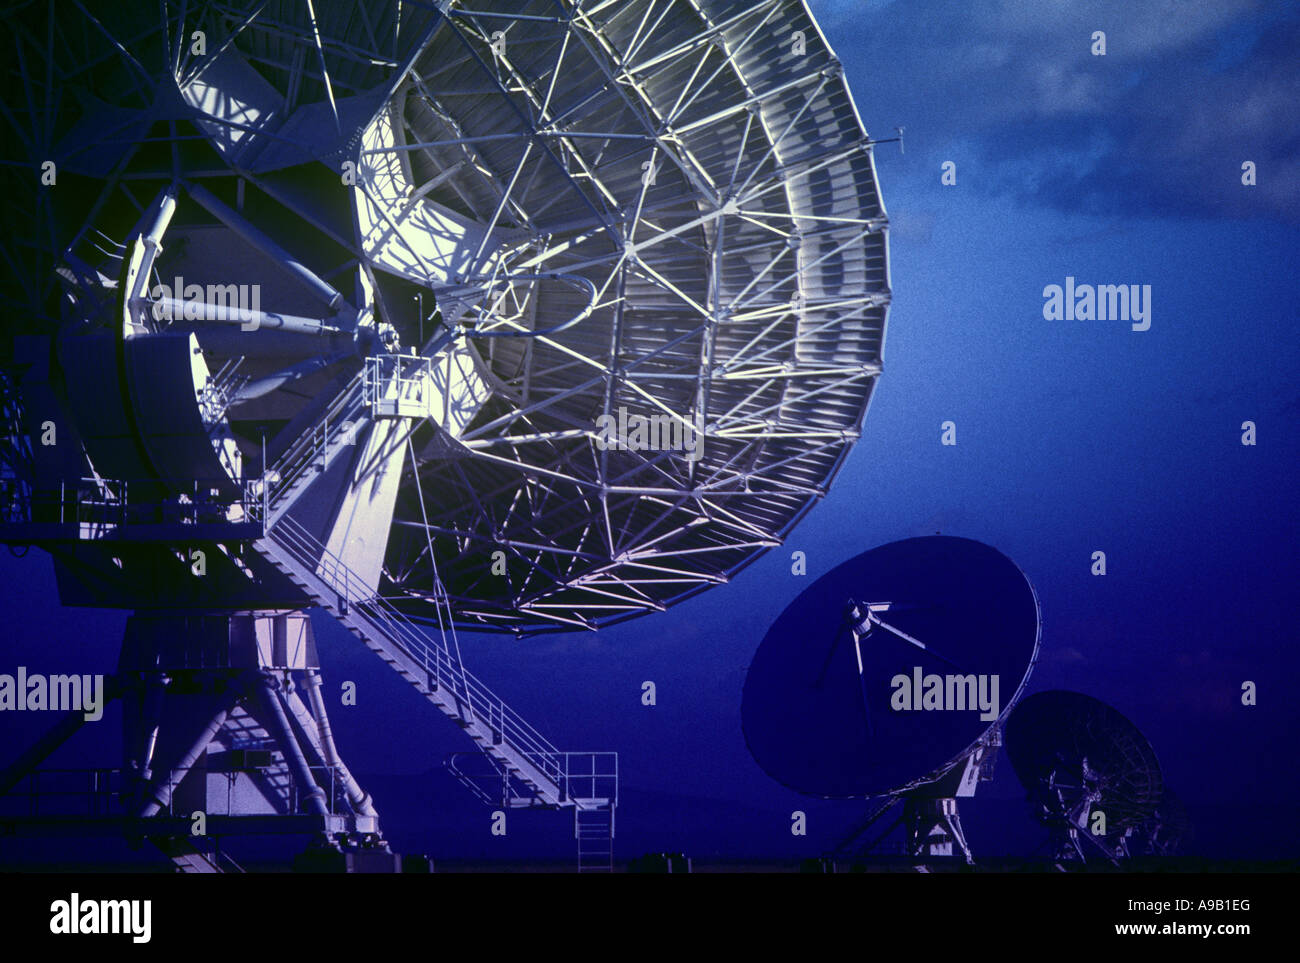 ROW OF SATELLITE DISHES JANSKY VLART RADIO TELESCOPE ARRAY PLAINS OF SAINT AUGUSTINE NEW MEXICO USA - Stock Image